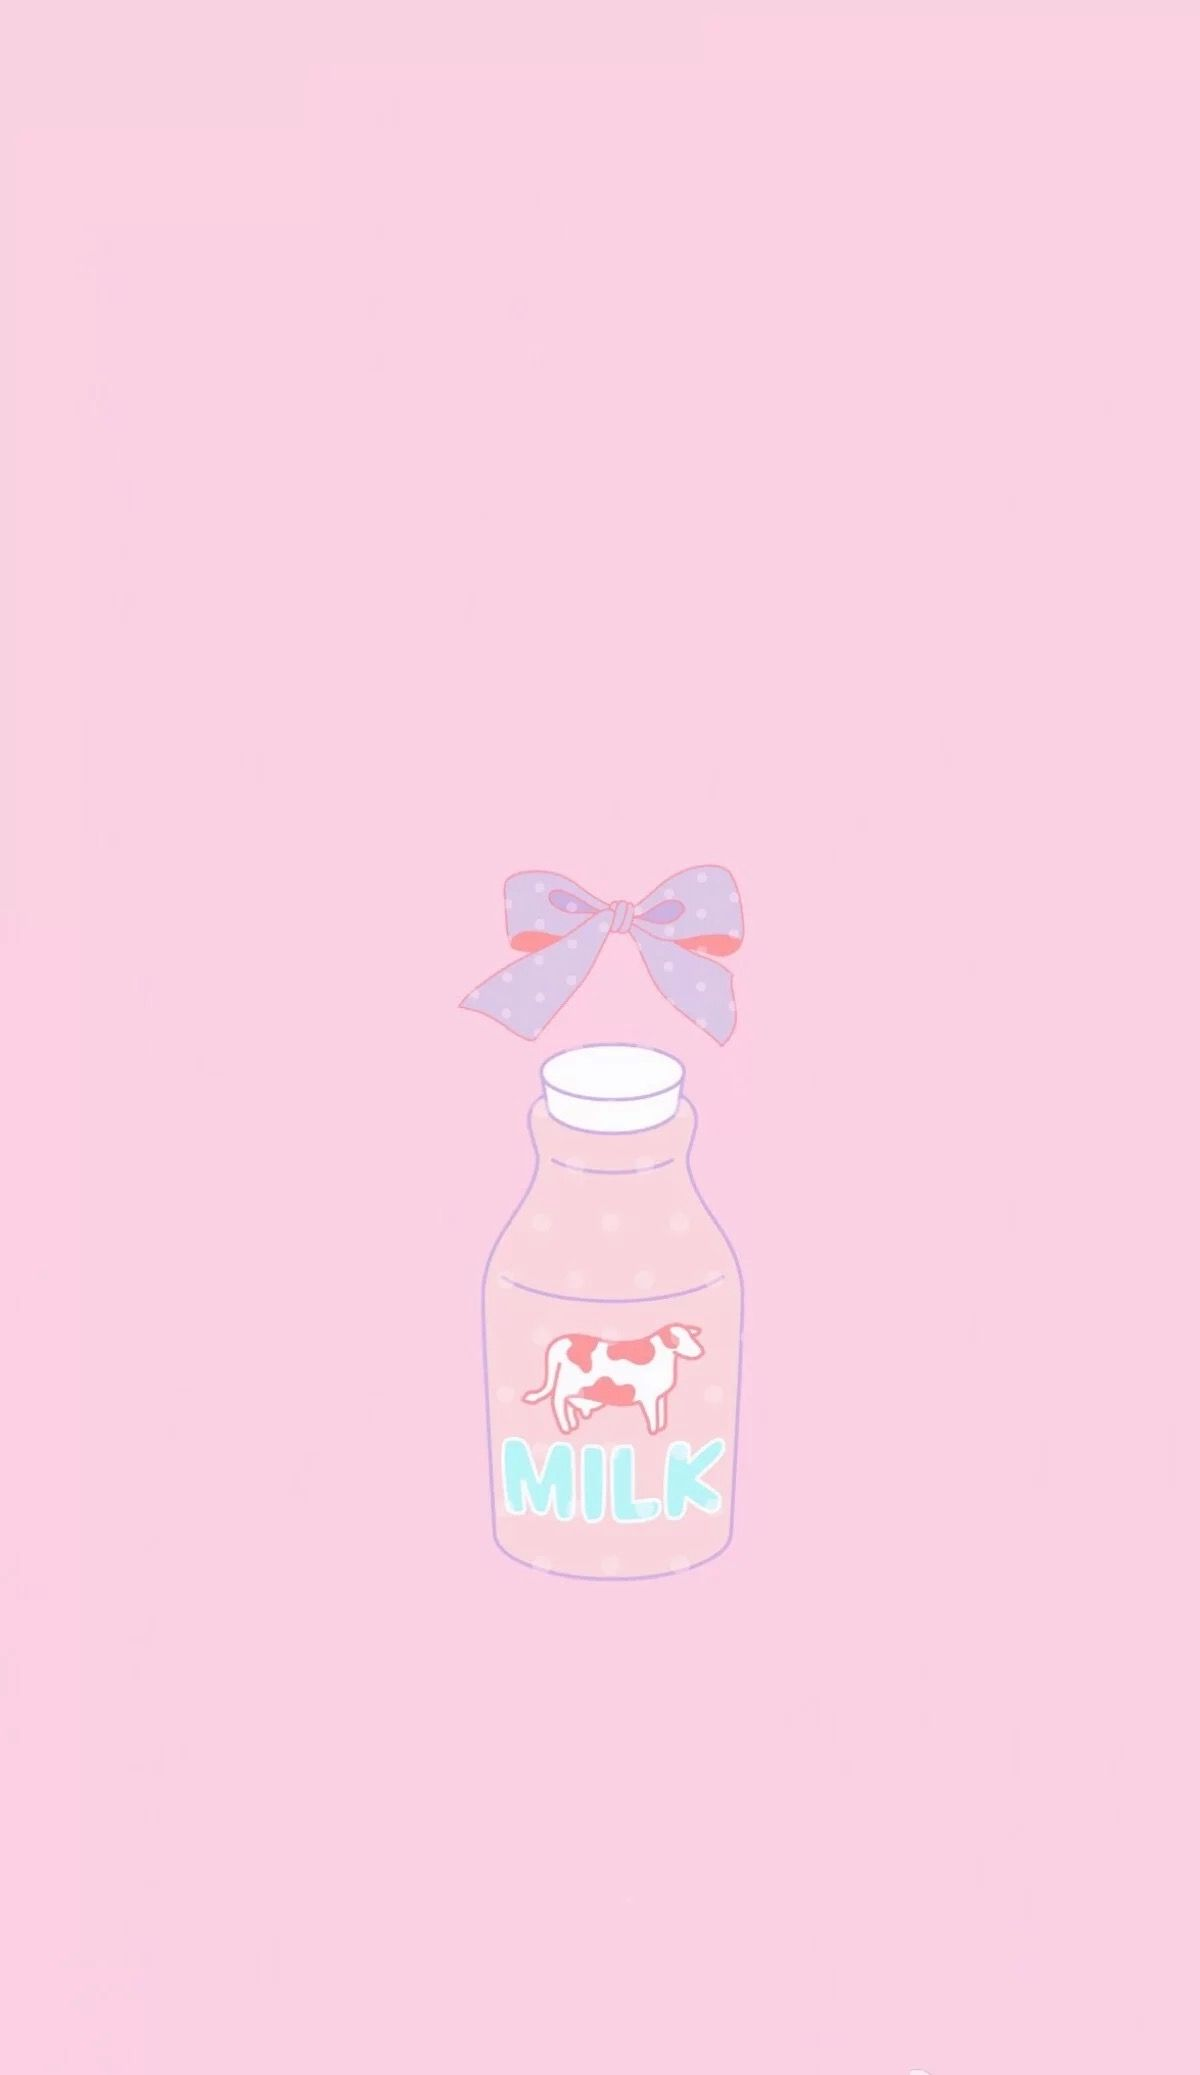 Pin By Arrianna On Suggested Cute Wallpapers Kawaii